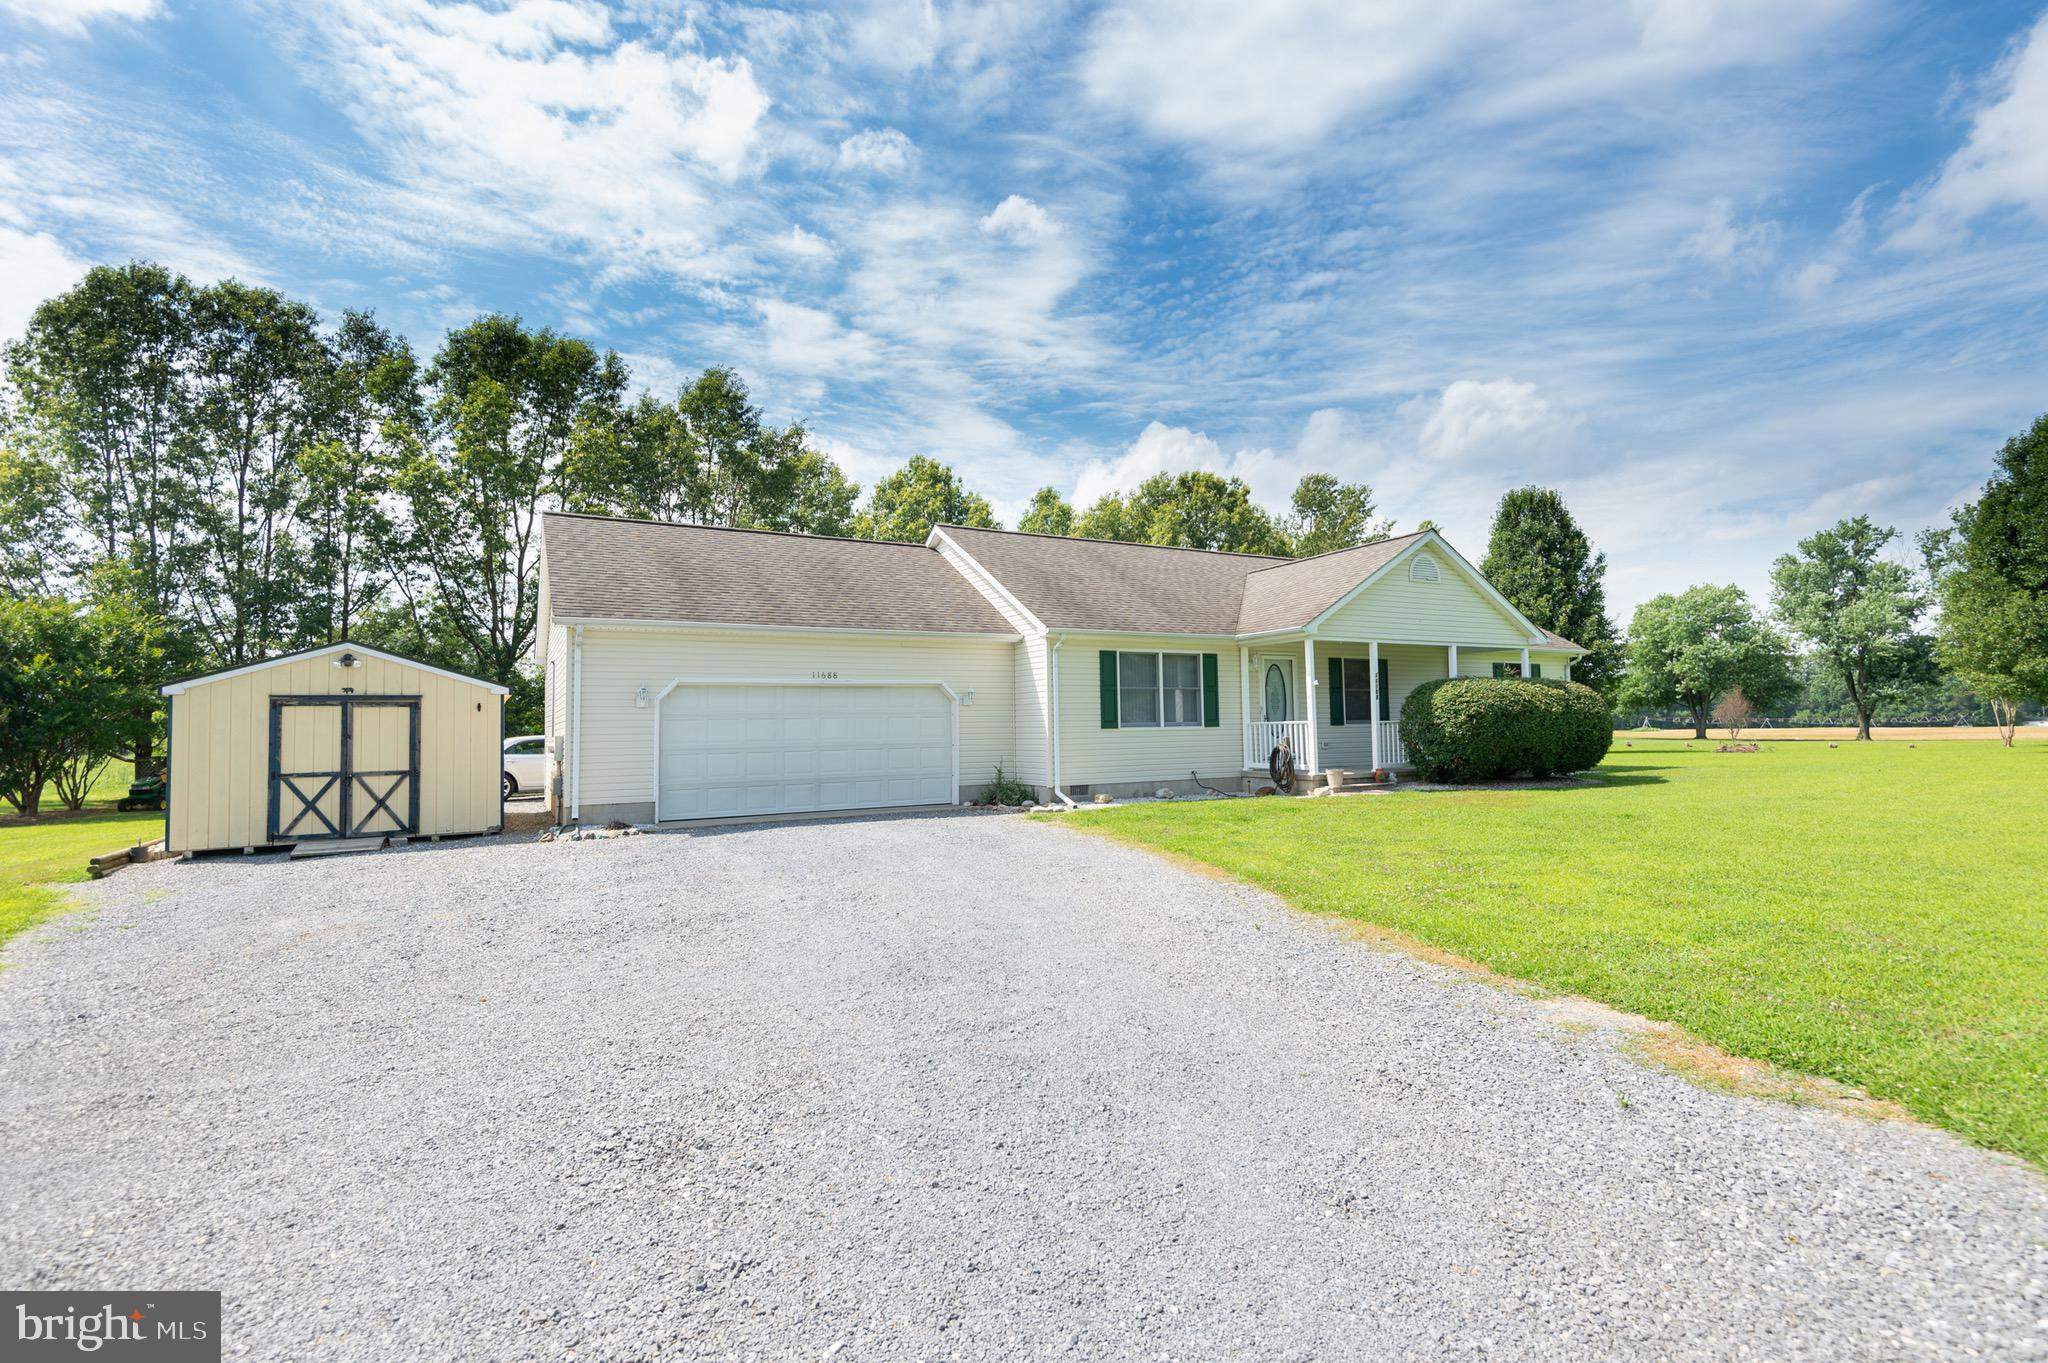 11688 HOLLY ROAD, RIDGELY, MD 21660